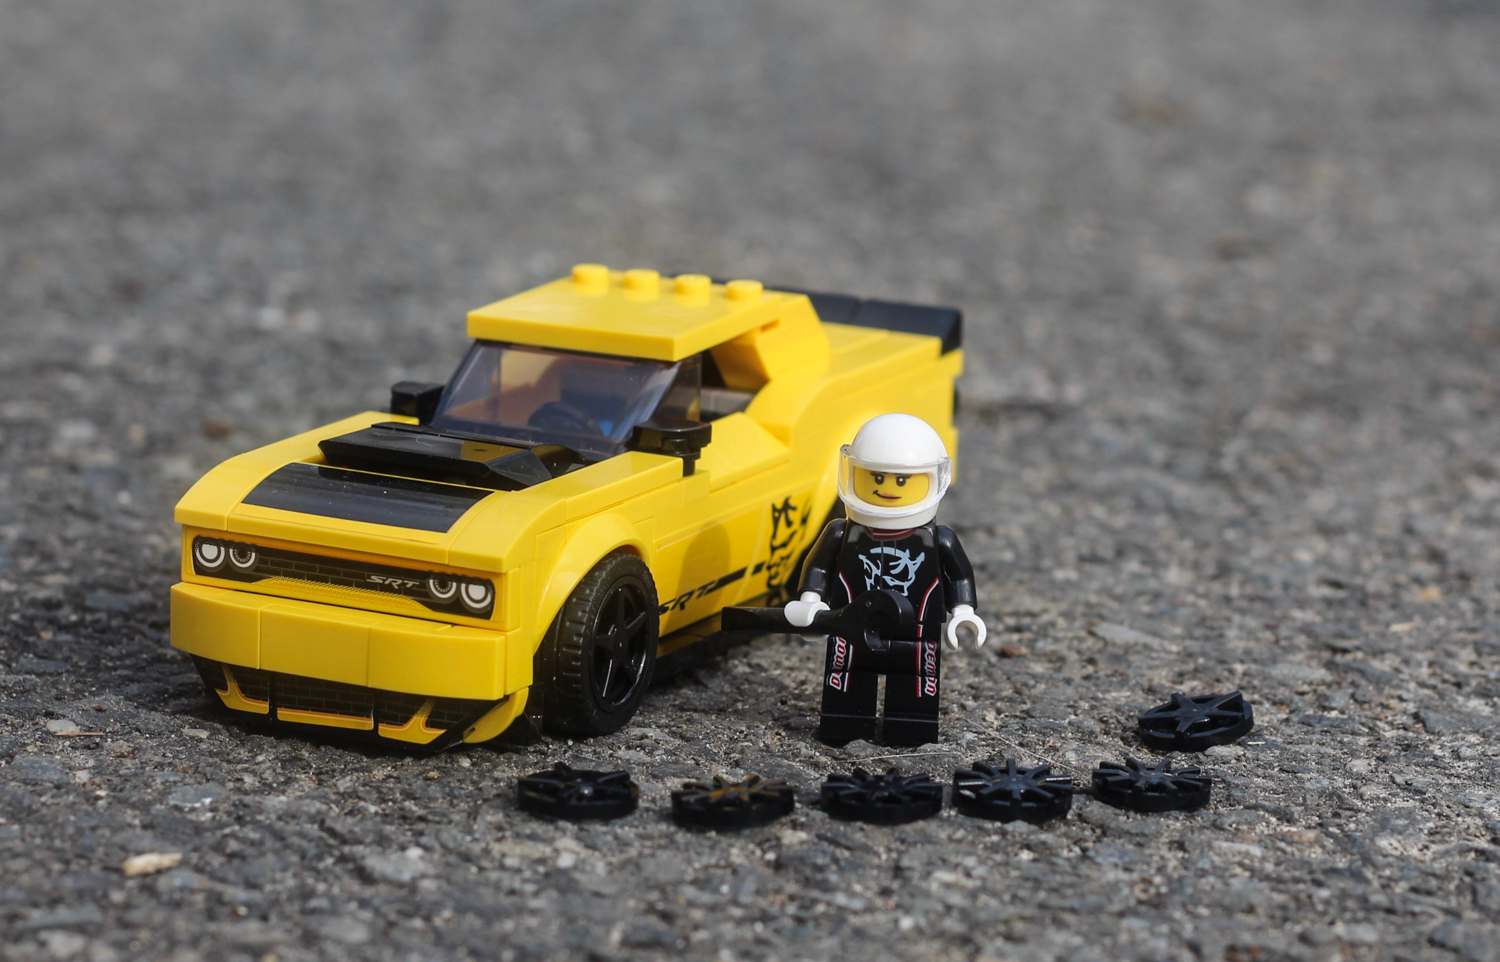 lego dodge demon with lego figure driver